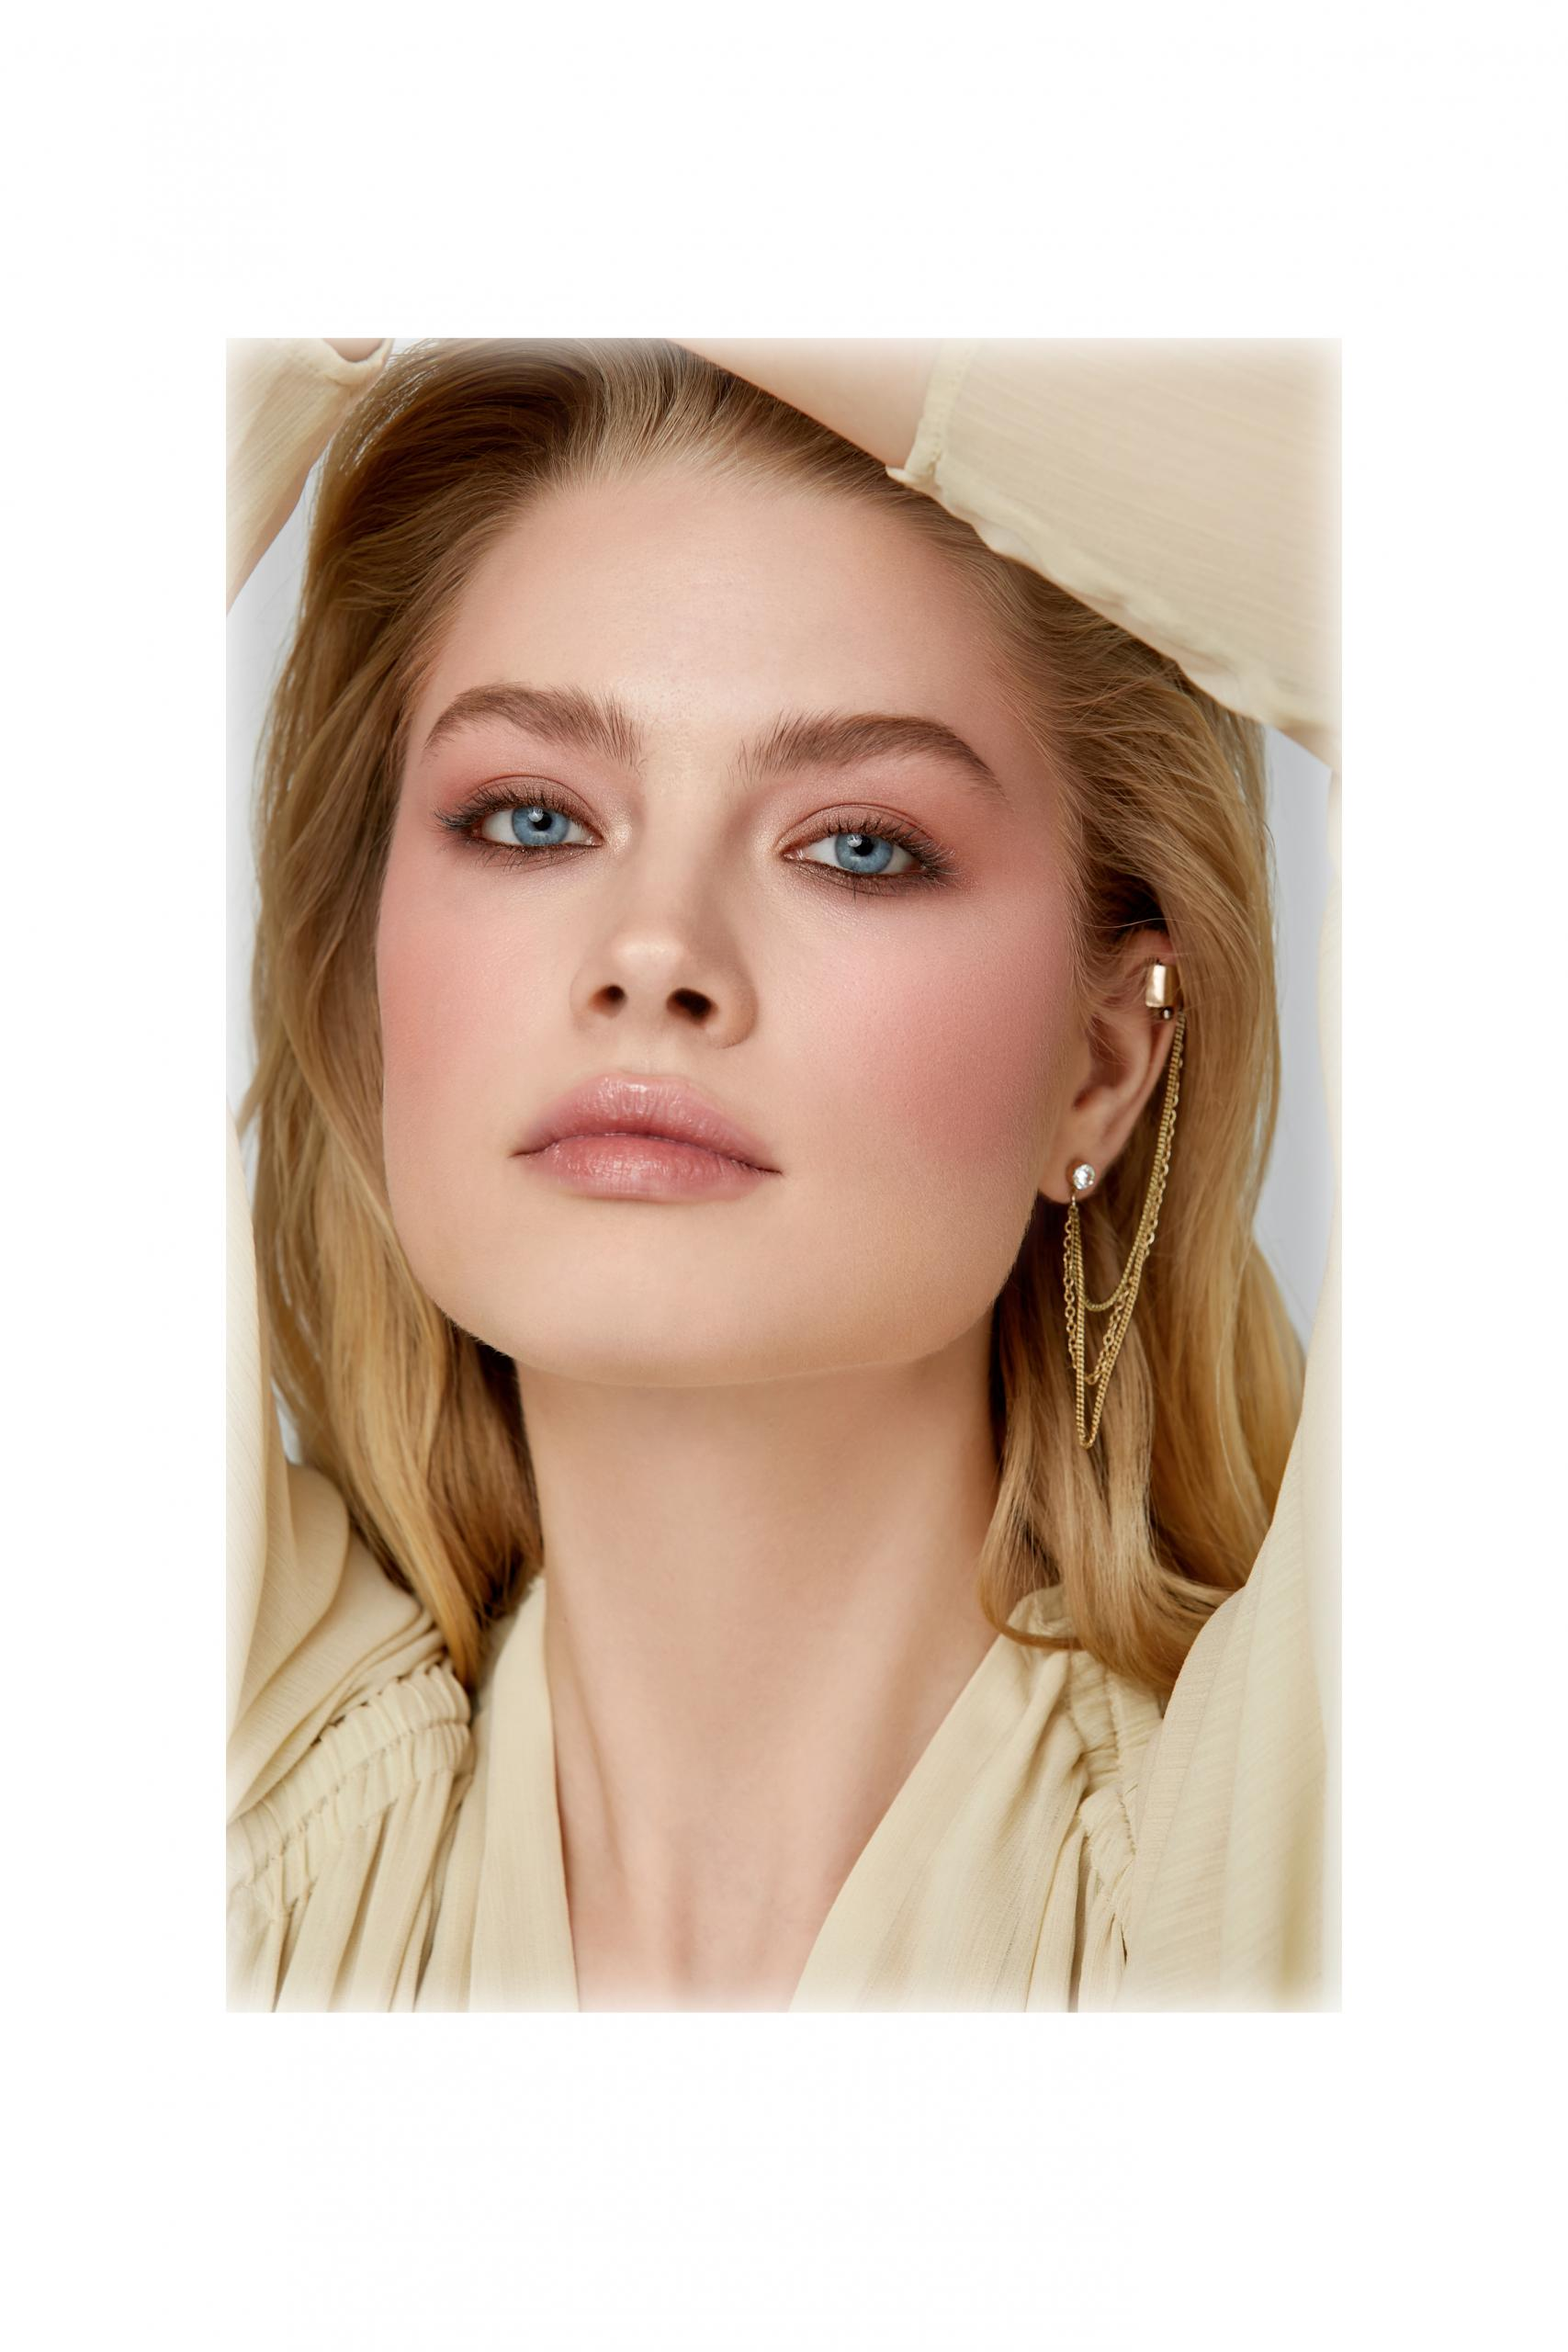 Blush Annbeauty YOUR CHEEKS Y&B on face